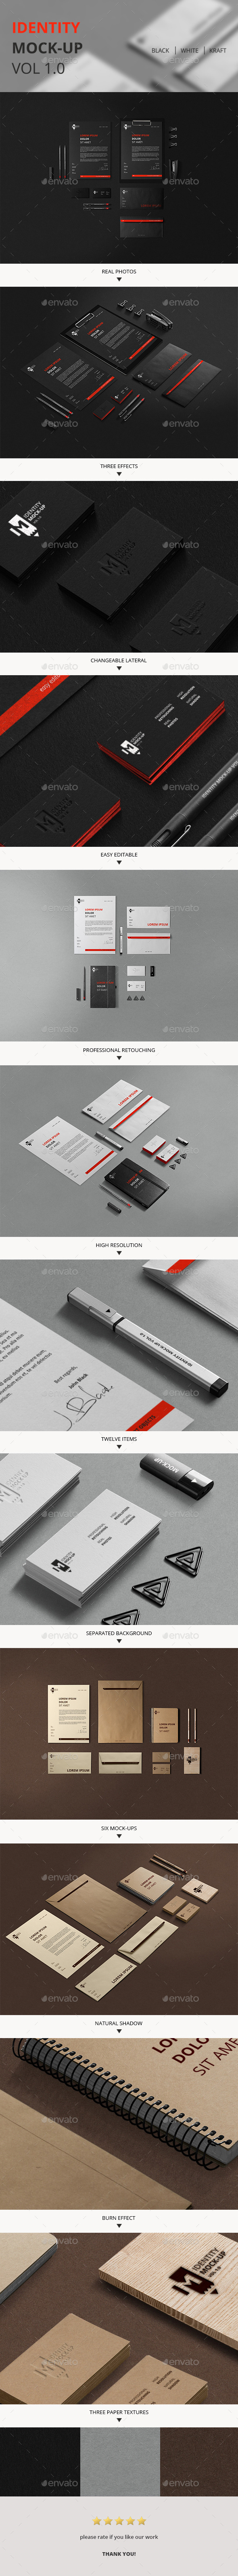 GraphicRiver Identity Mock-Up Vol 1.0 9913114